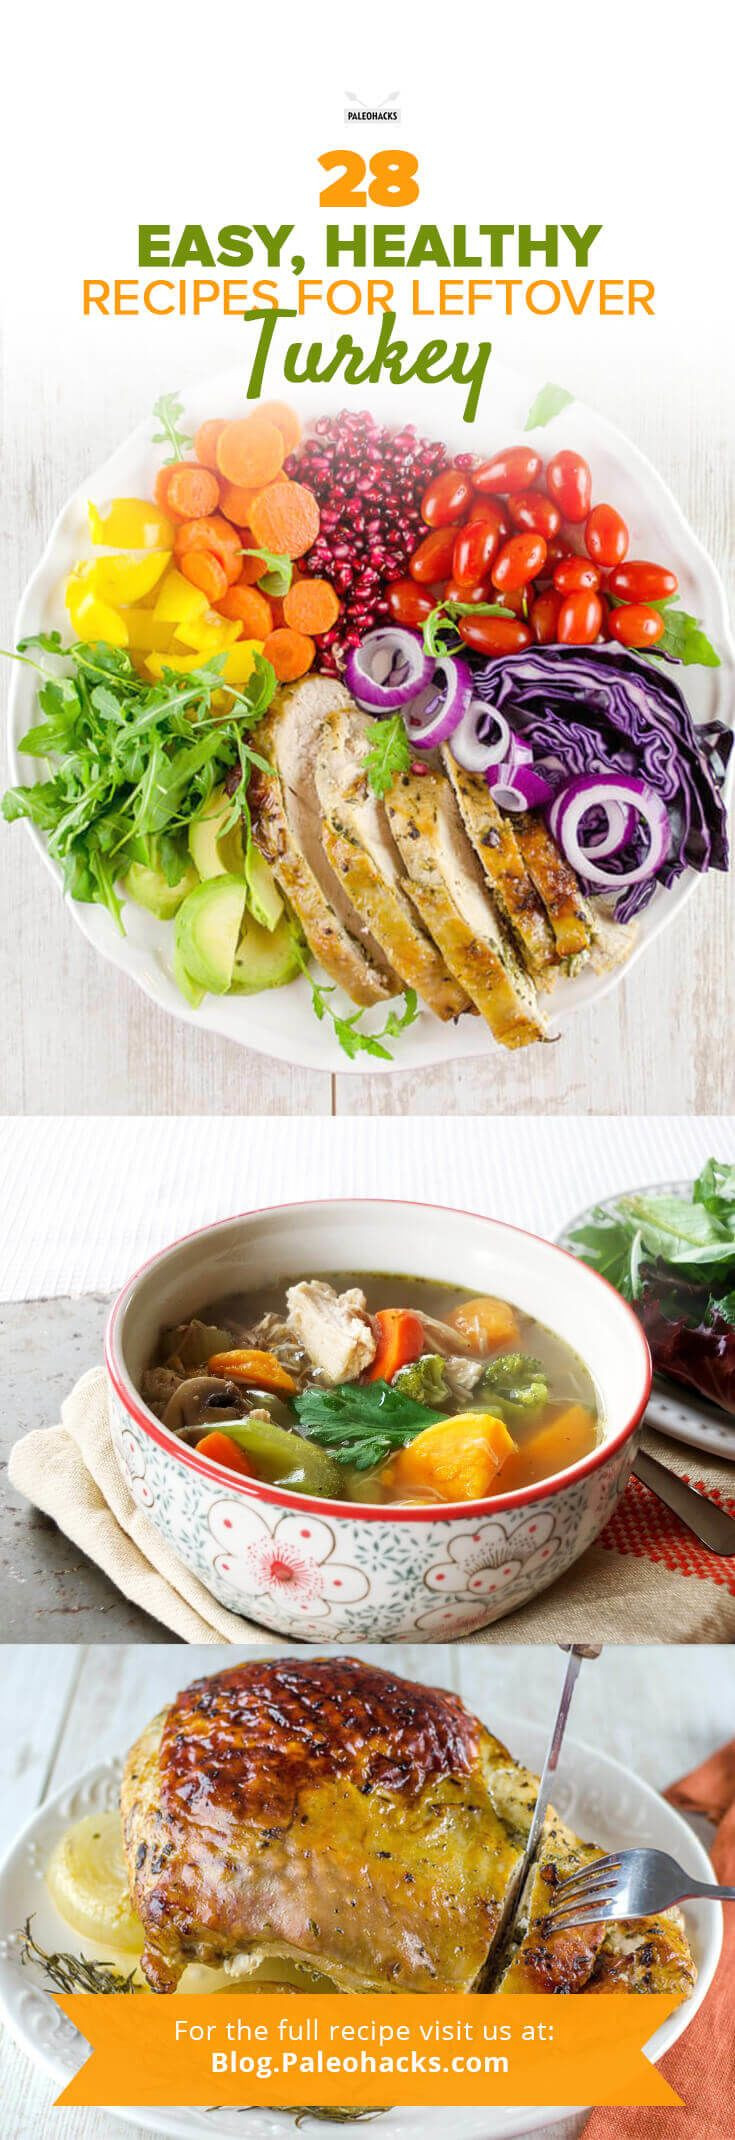 Healthy Thanksgiving Leftover Recipes  28 Easy Healthy Leftover Turkey Recipes to Last All Week